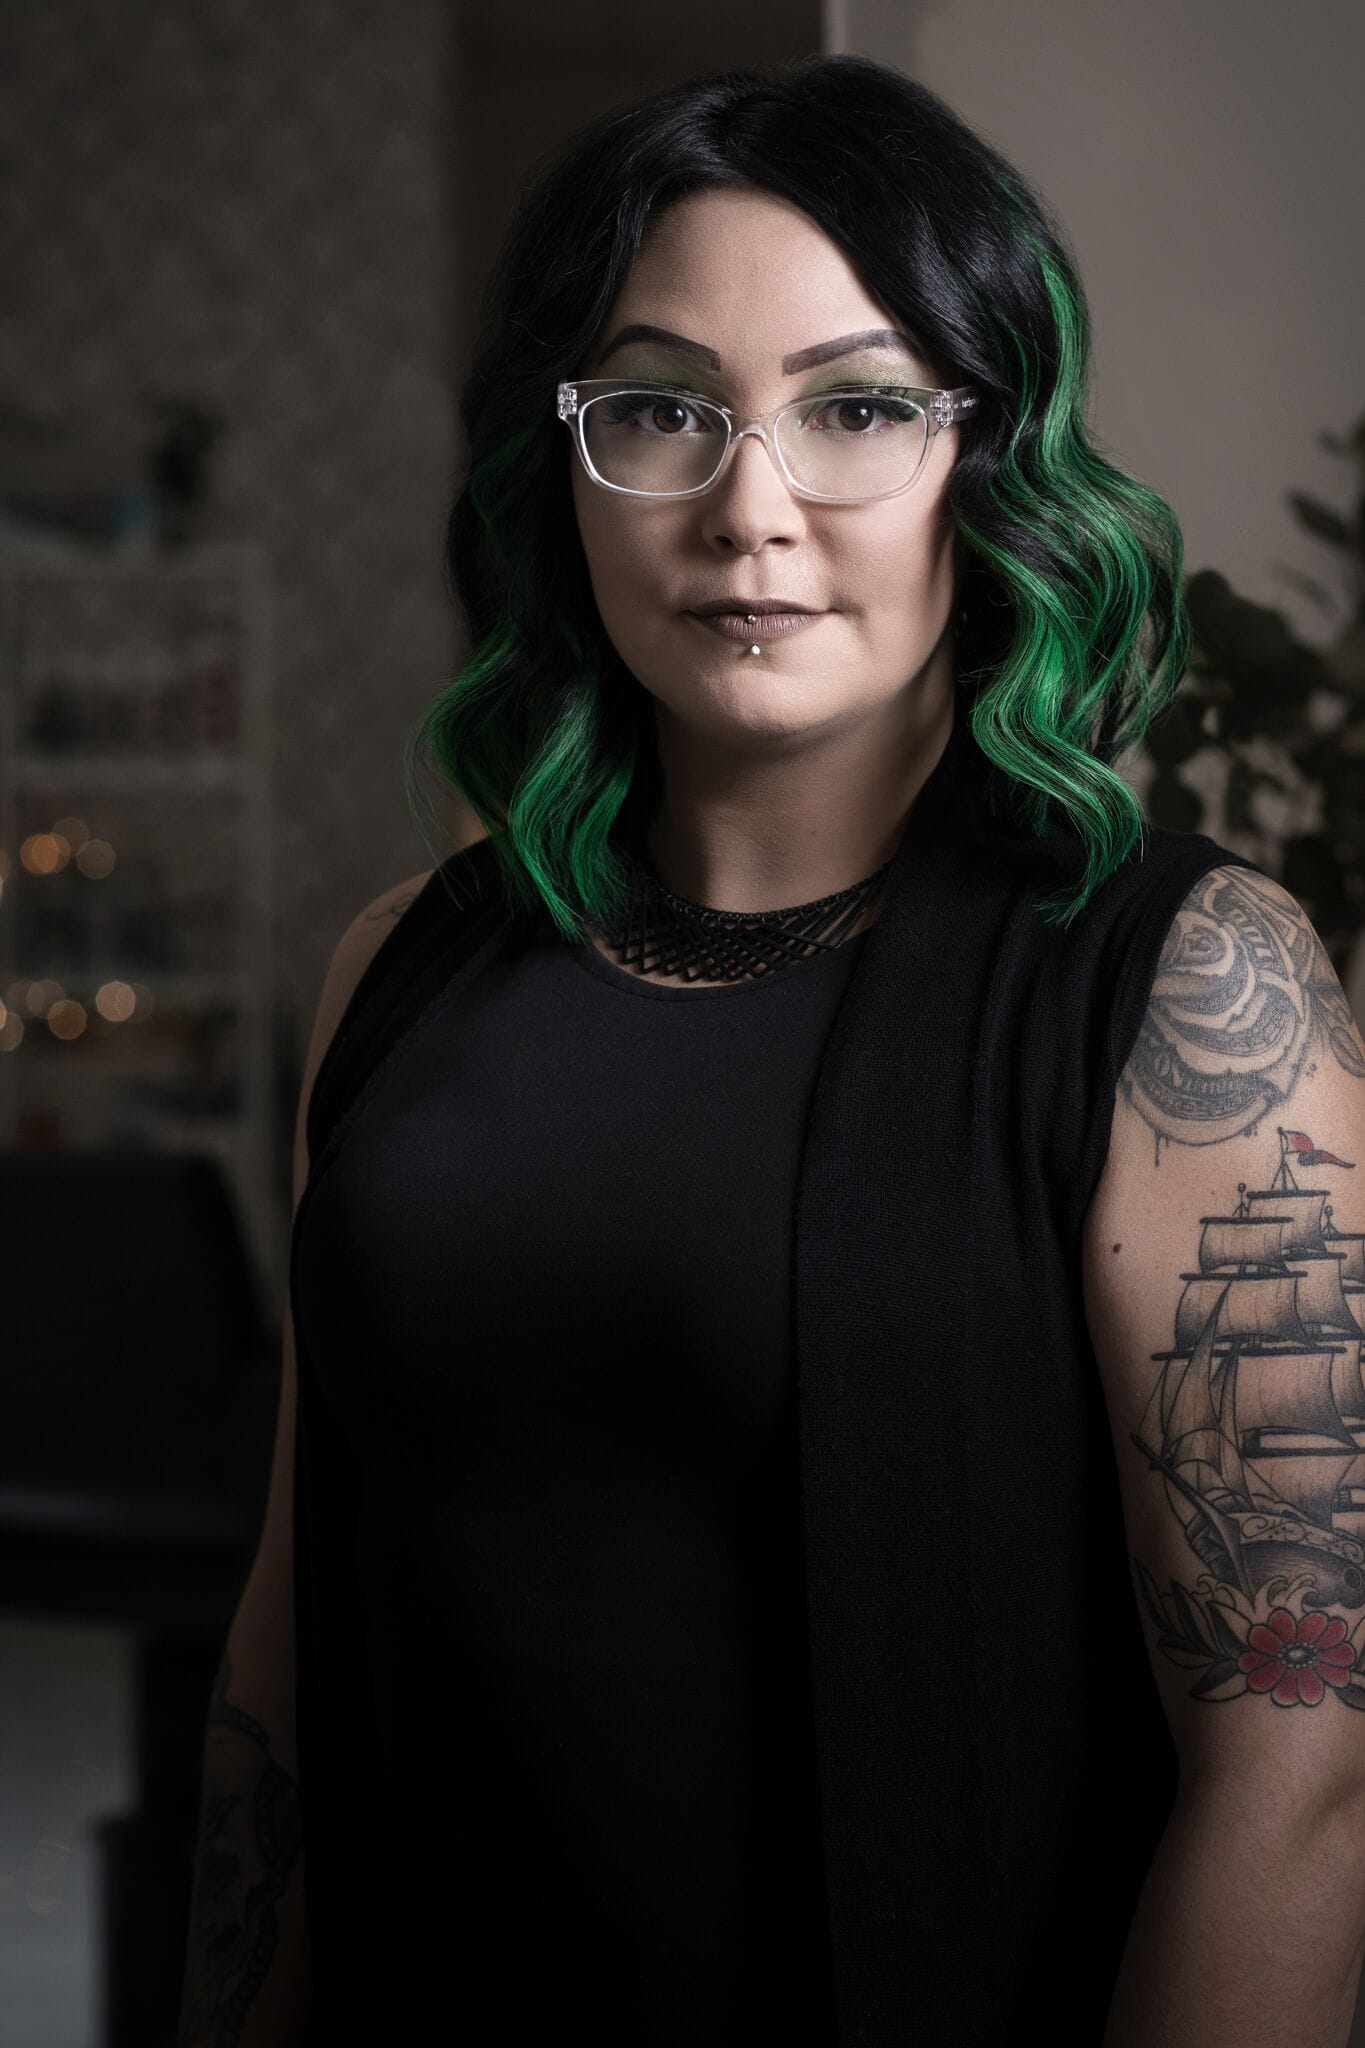 Headshot of Nikole, hair stylist at Vivid Hair Studio.